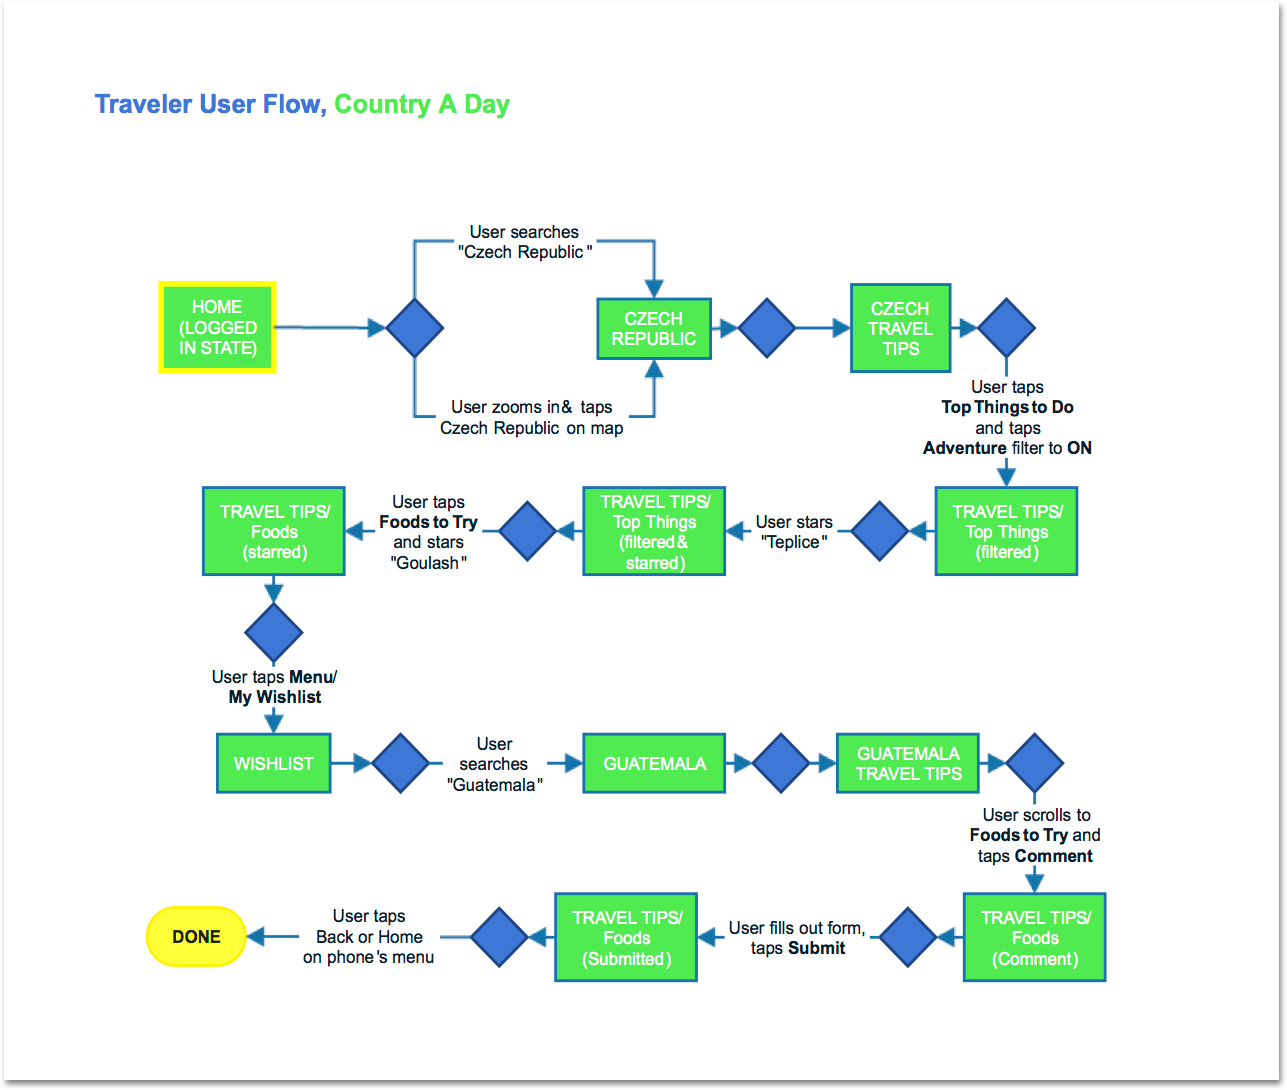 Traveler-User-Flow-Country-A-Day